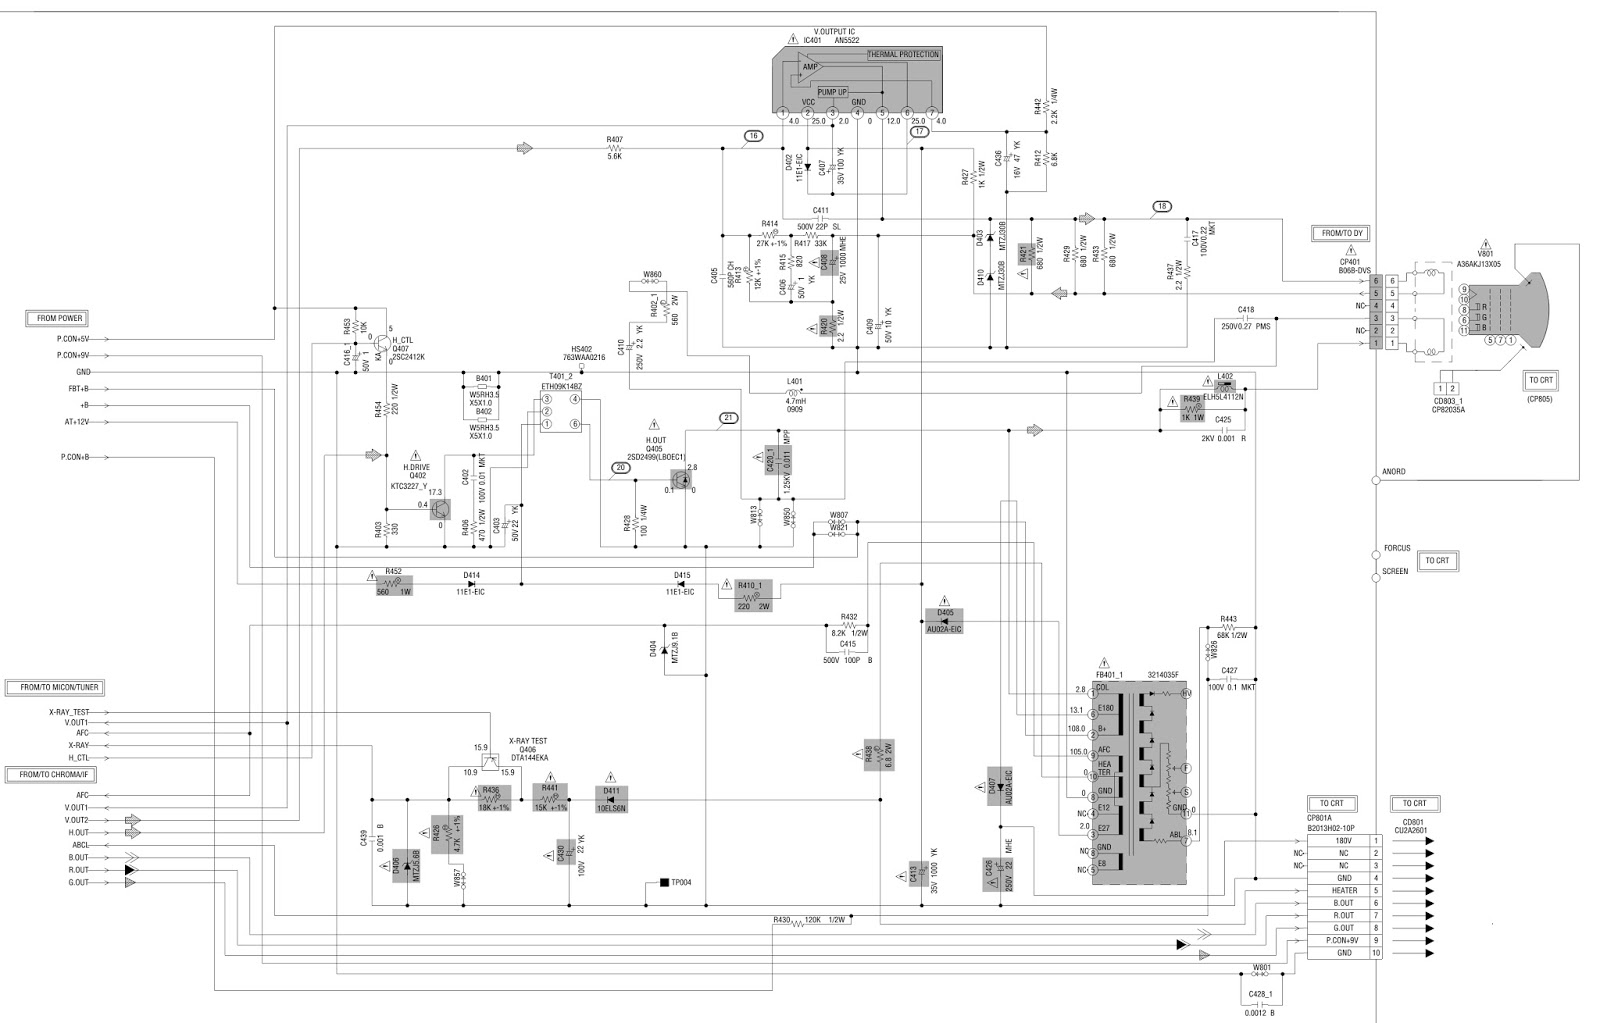 jvc av14f703 - crt tv - schematic